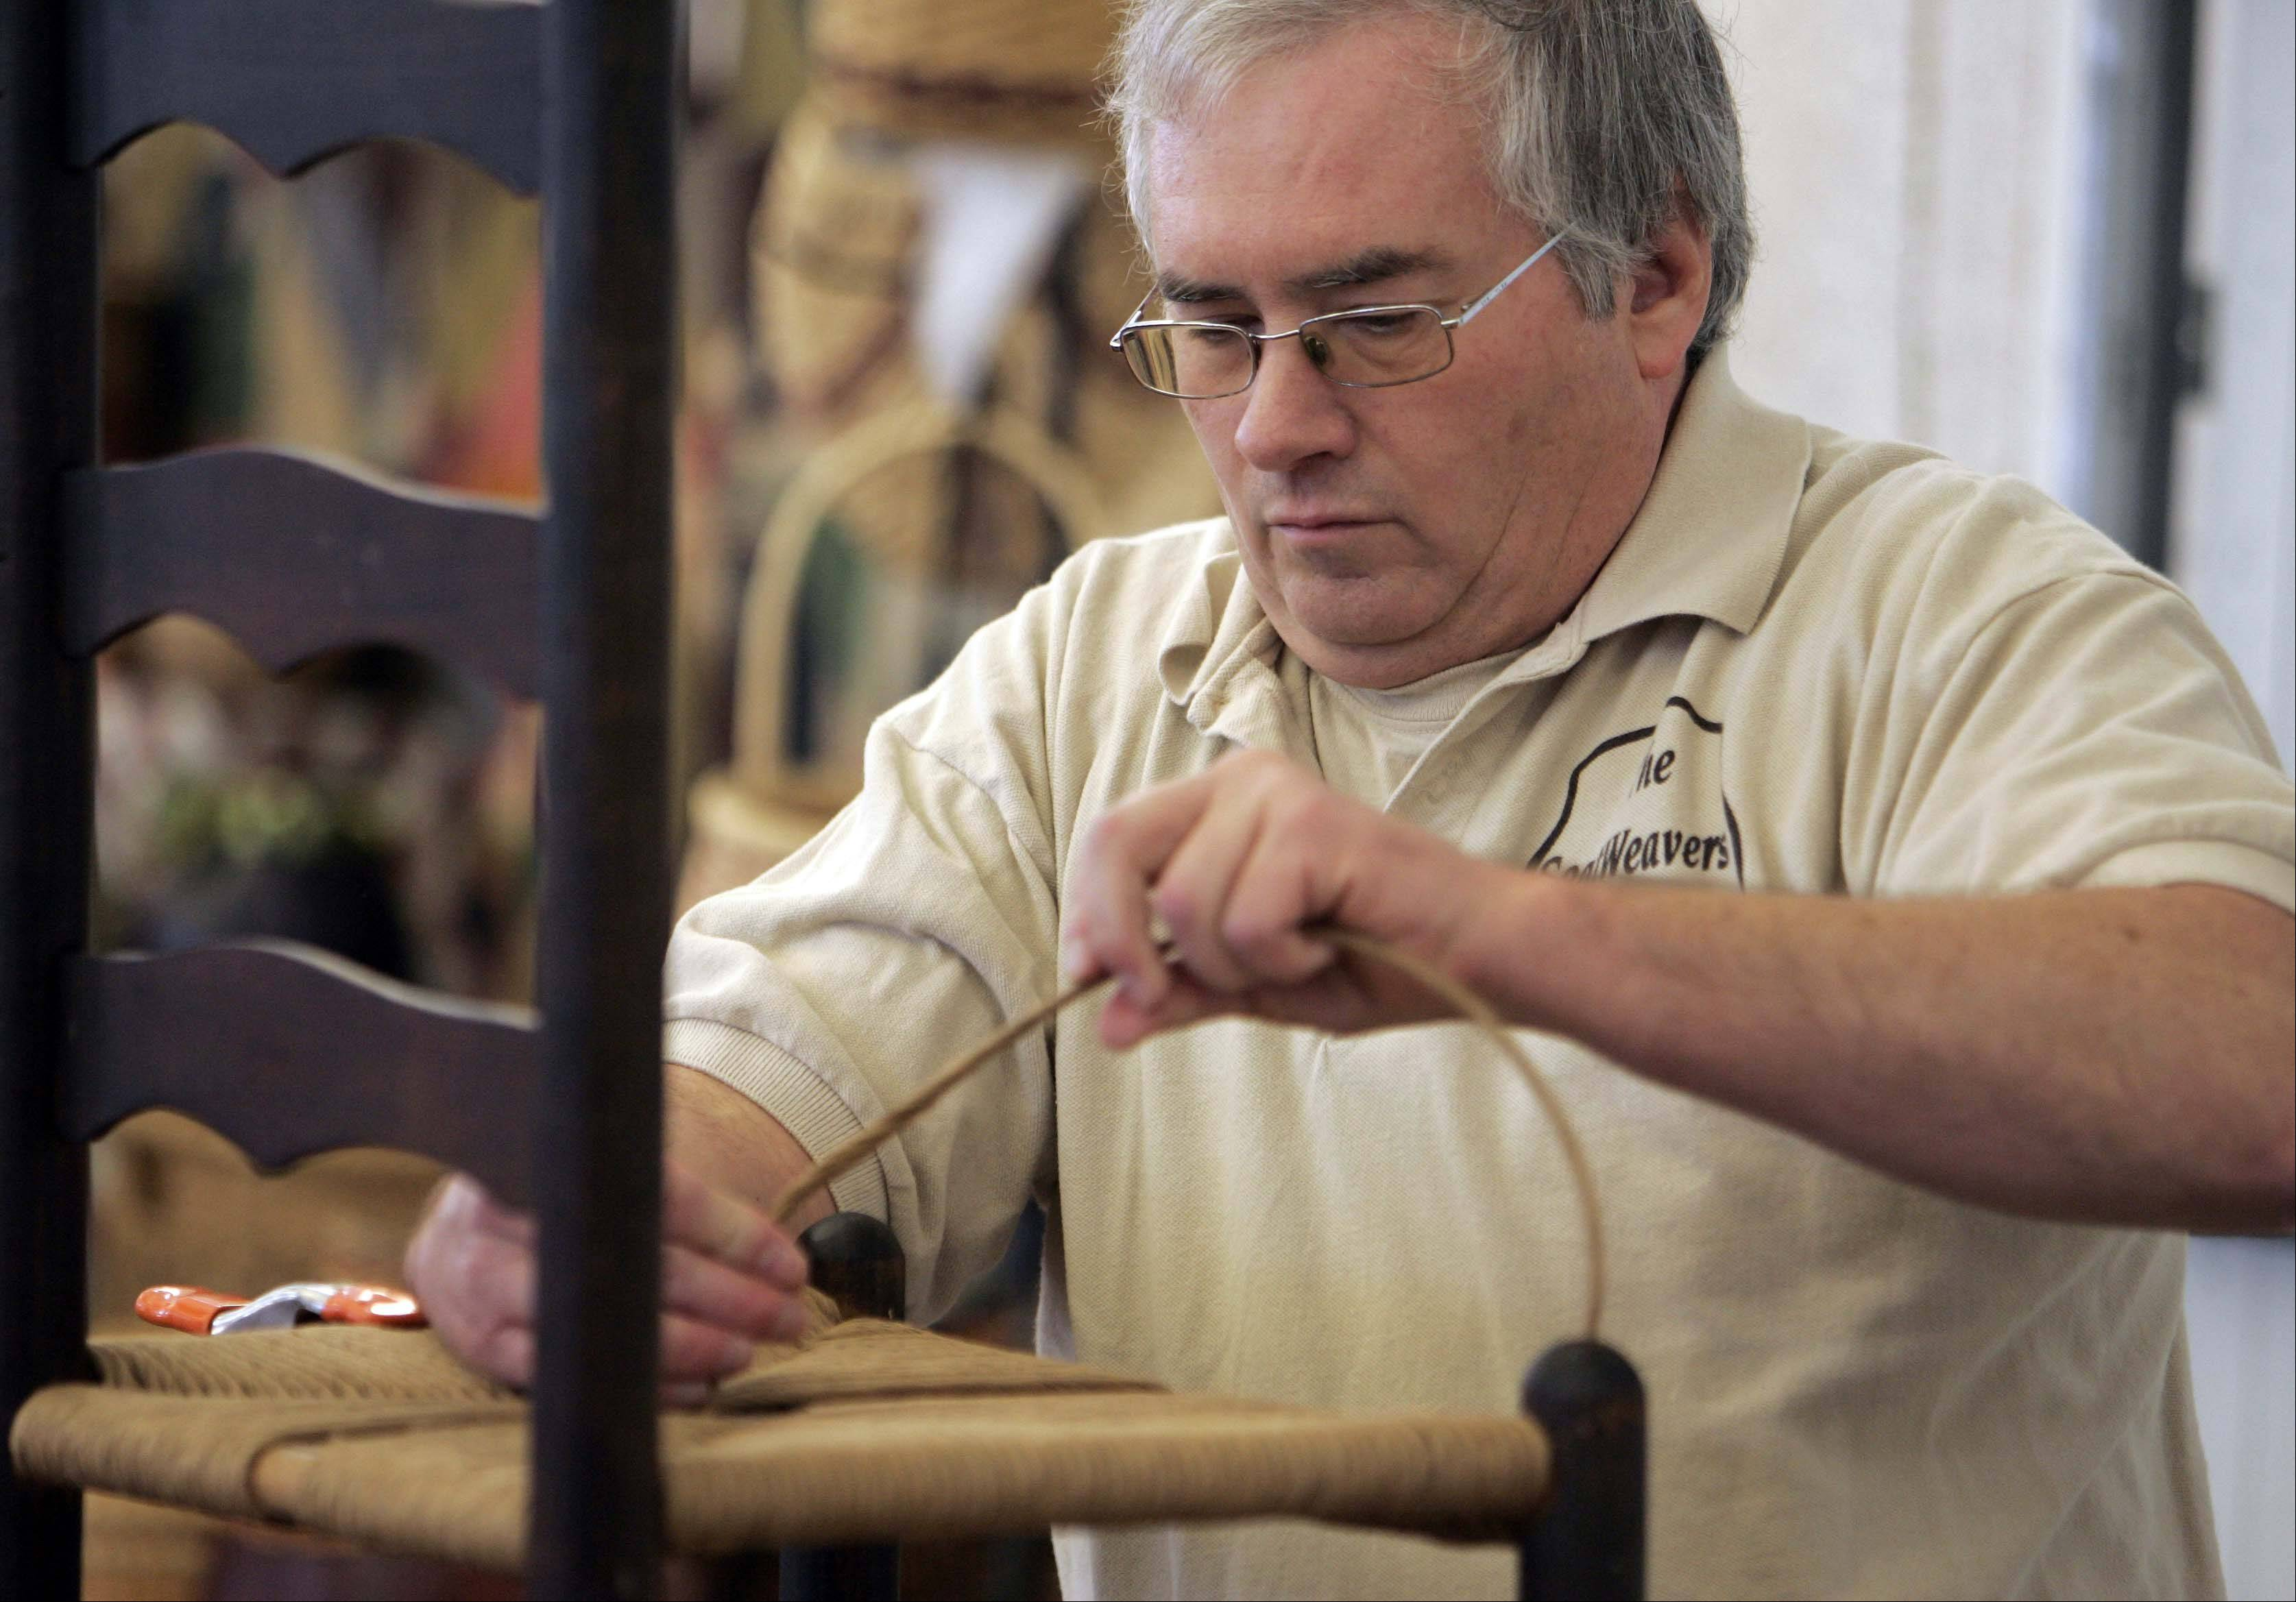 Bill Morse of Seat Weavers from Elgin works on repairing a chair during last year's Christmas on the Fox. This year's show will feature 70 artisans and crafters.